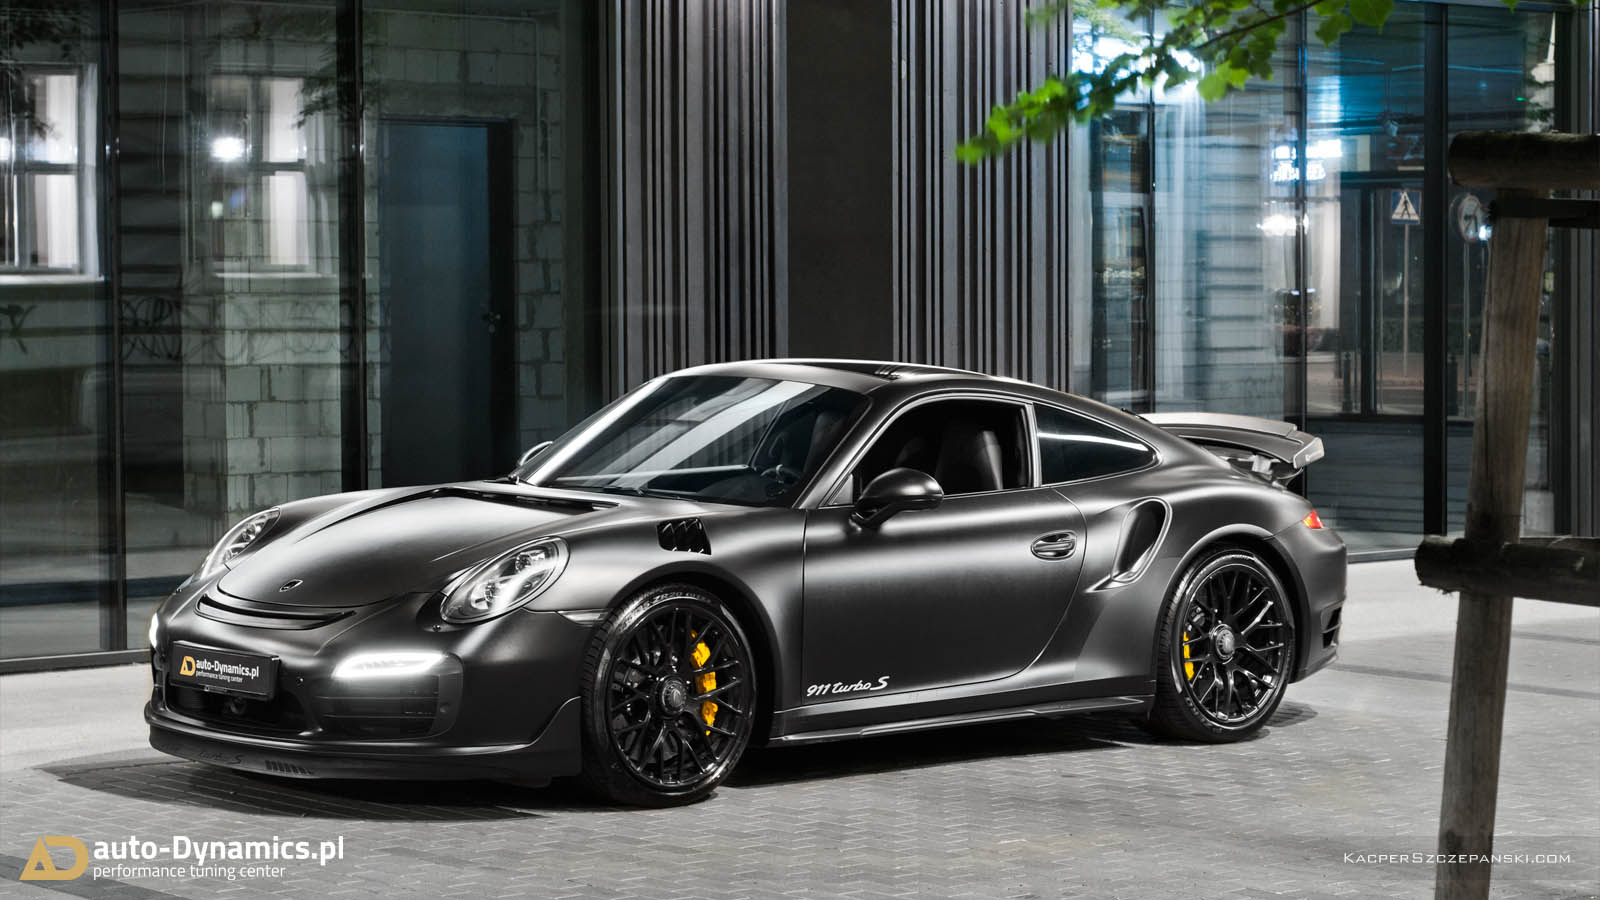 dark knight 911 turbo s brings out the best. Black Bedroom Furniture Sets. Home Design Ideas